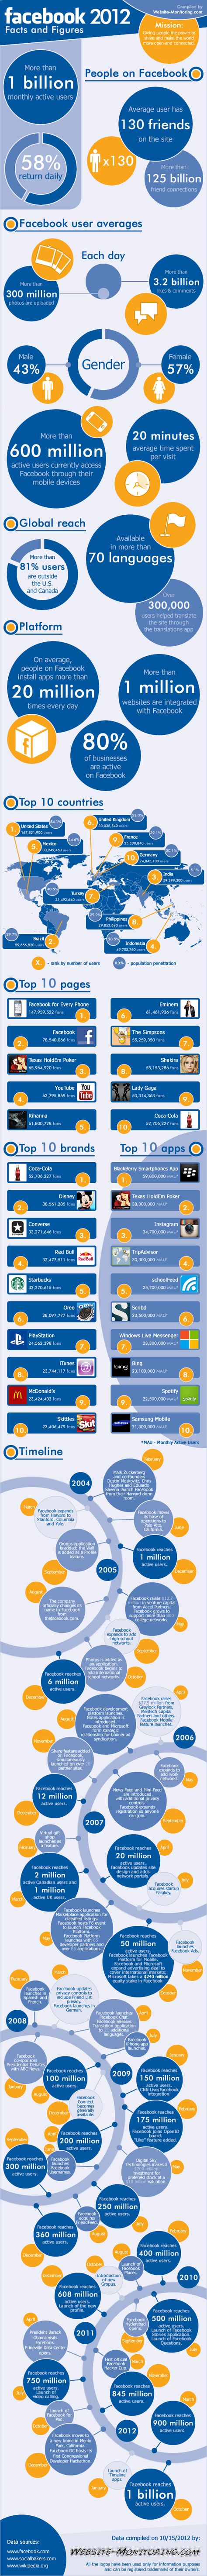 facebook facts and figures 2012